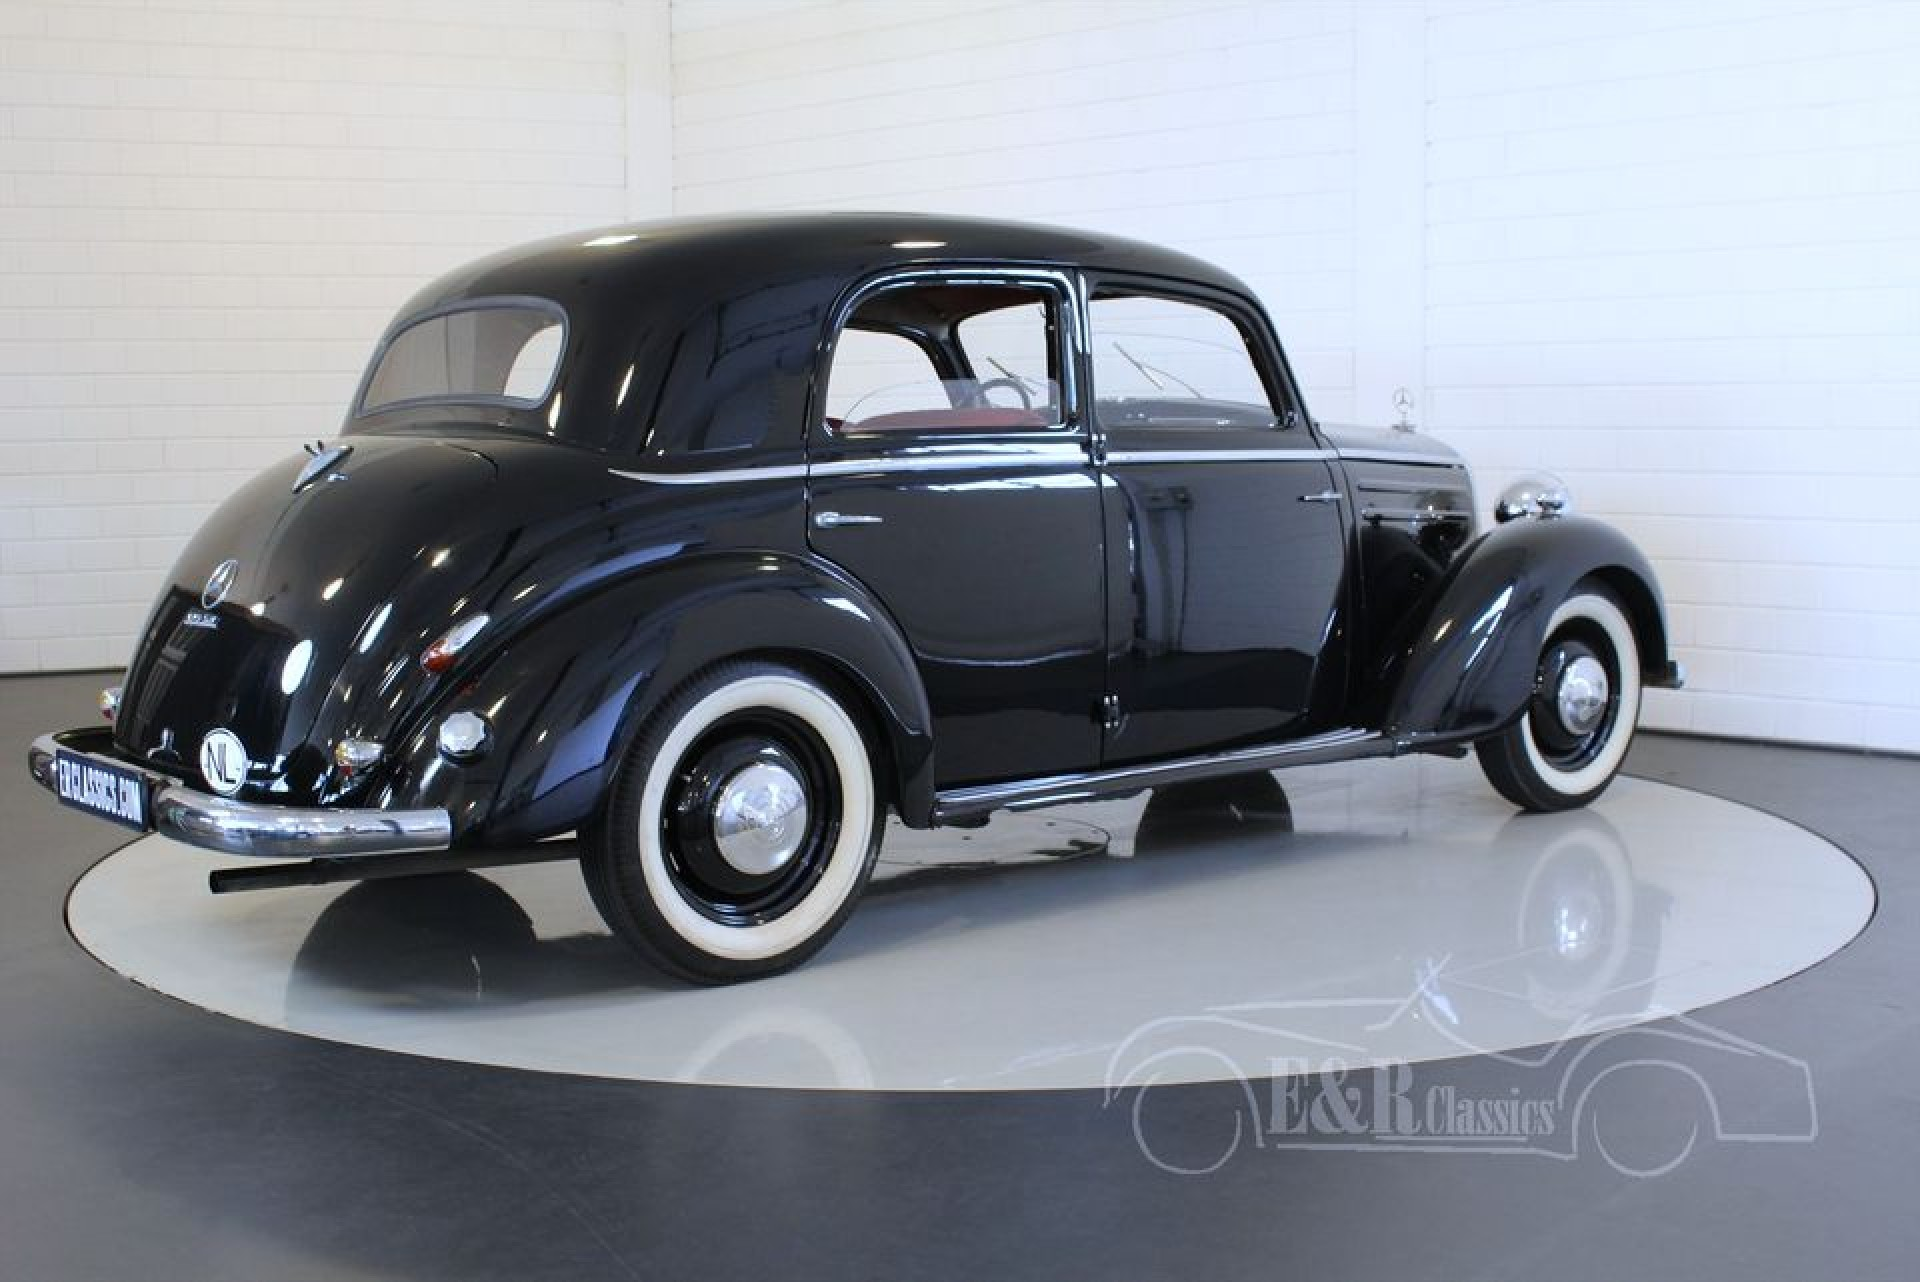 Mercedes benz 170 sv diesel 1953 for sale at erclassics for 1953 mercedes benz 220 sedan for sale